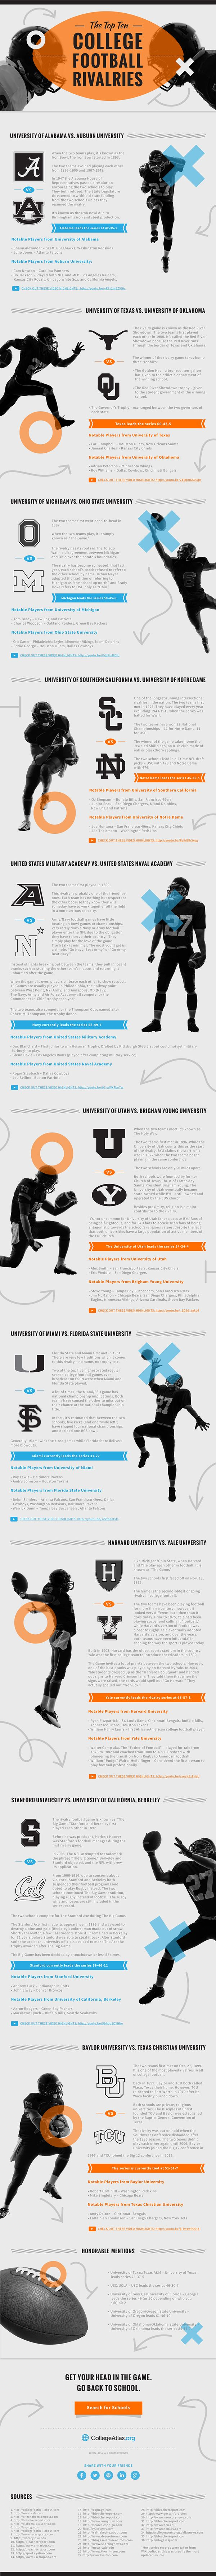 College Football Rivalries Infographic by Joshua Fowlke, via Behance